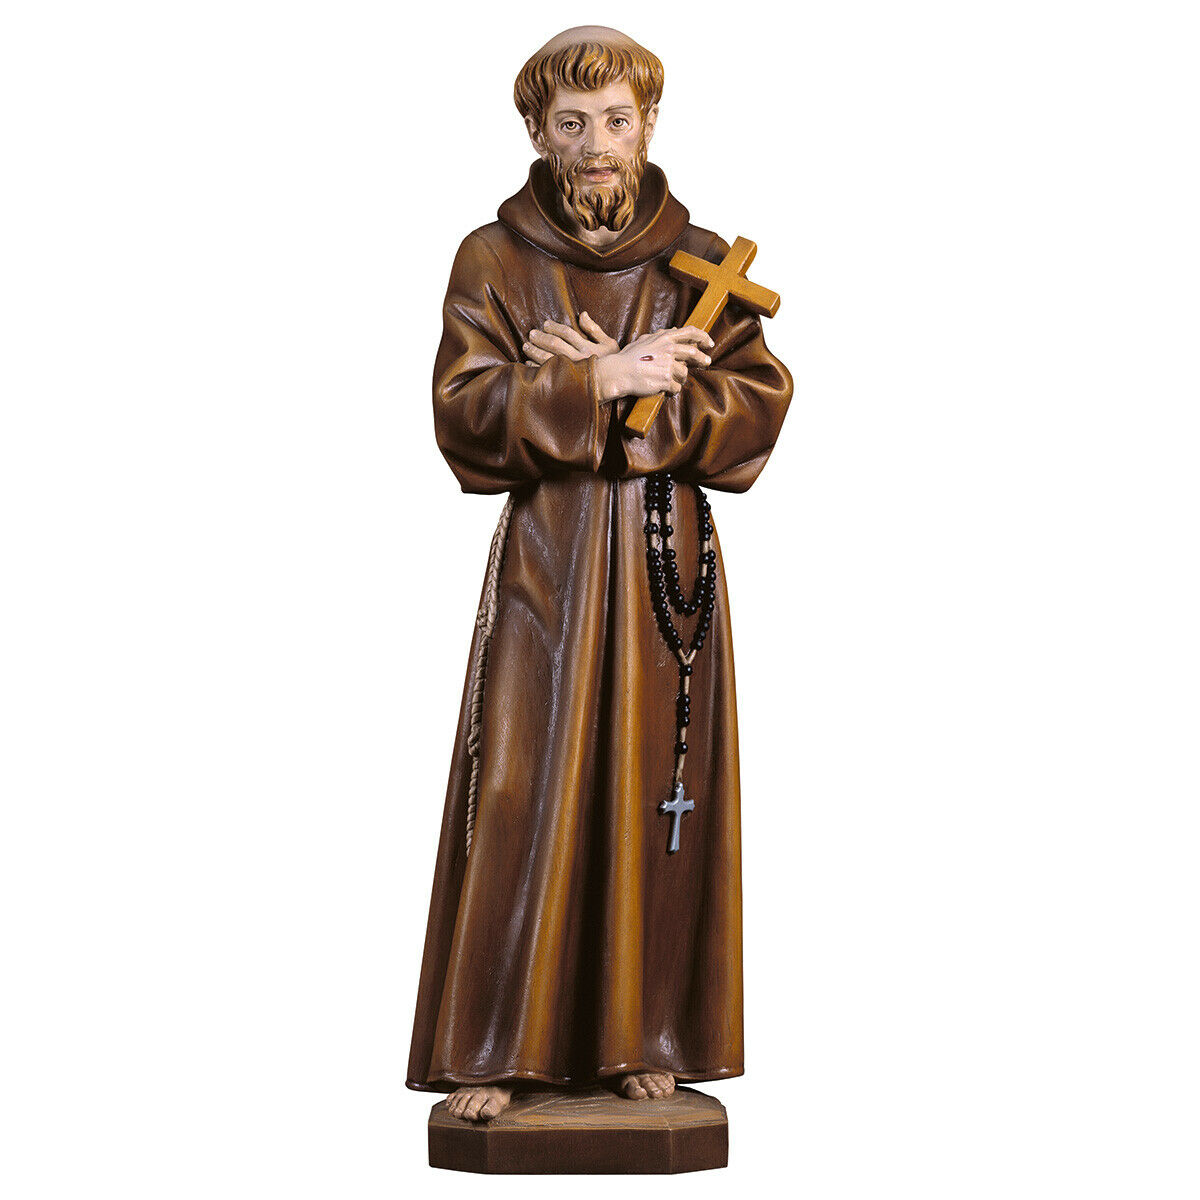 Statue Saint Francesco Assisi with Cross - St. Francis of Assisi with Croce